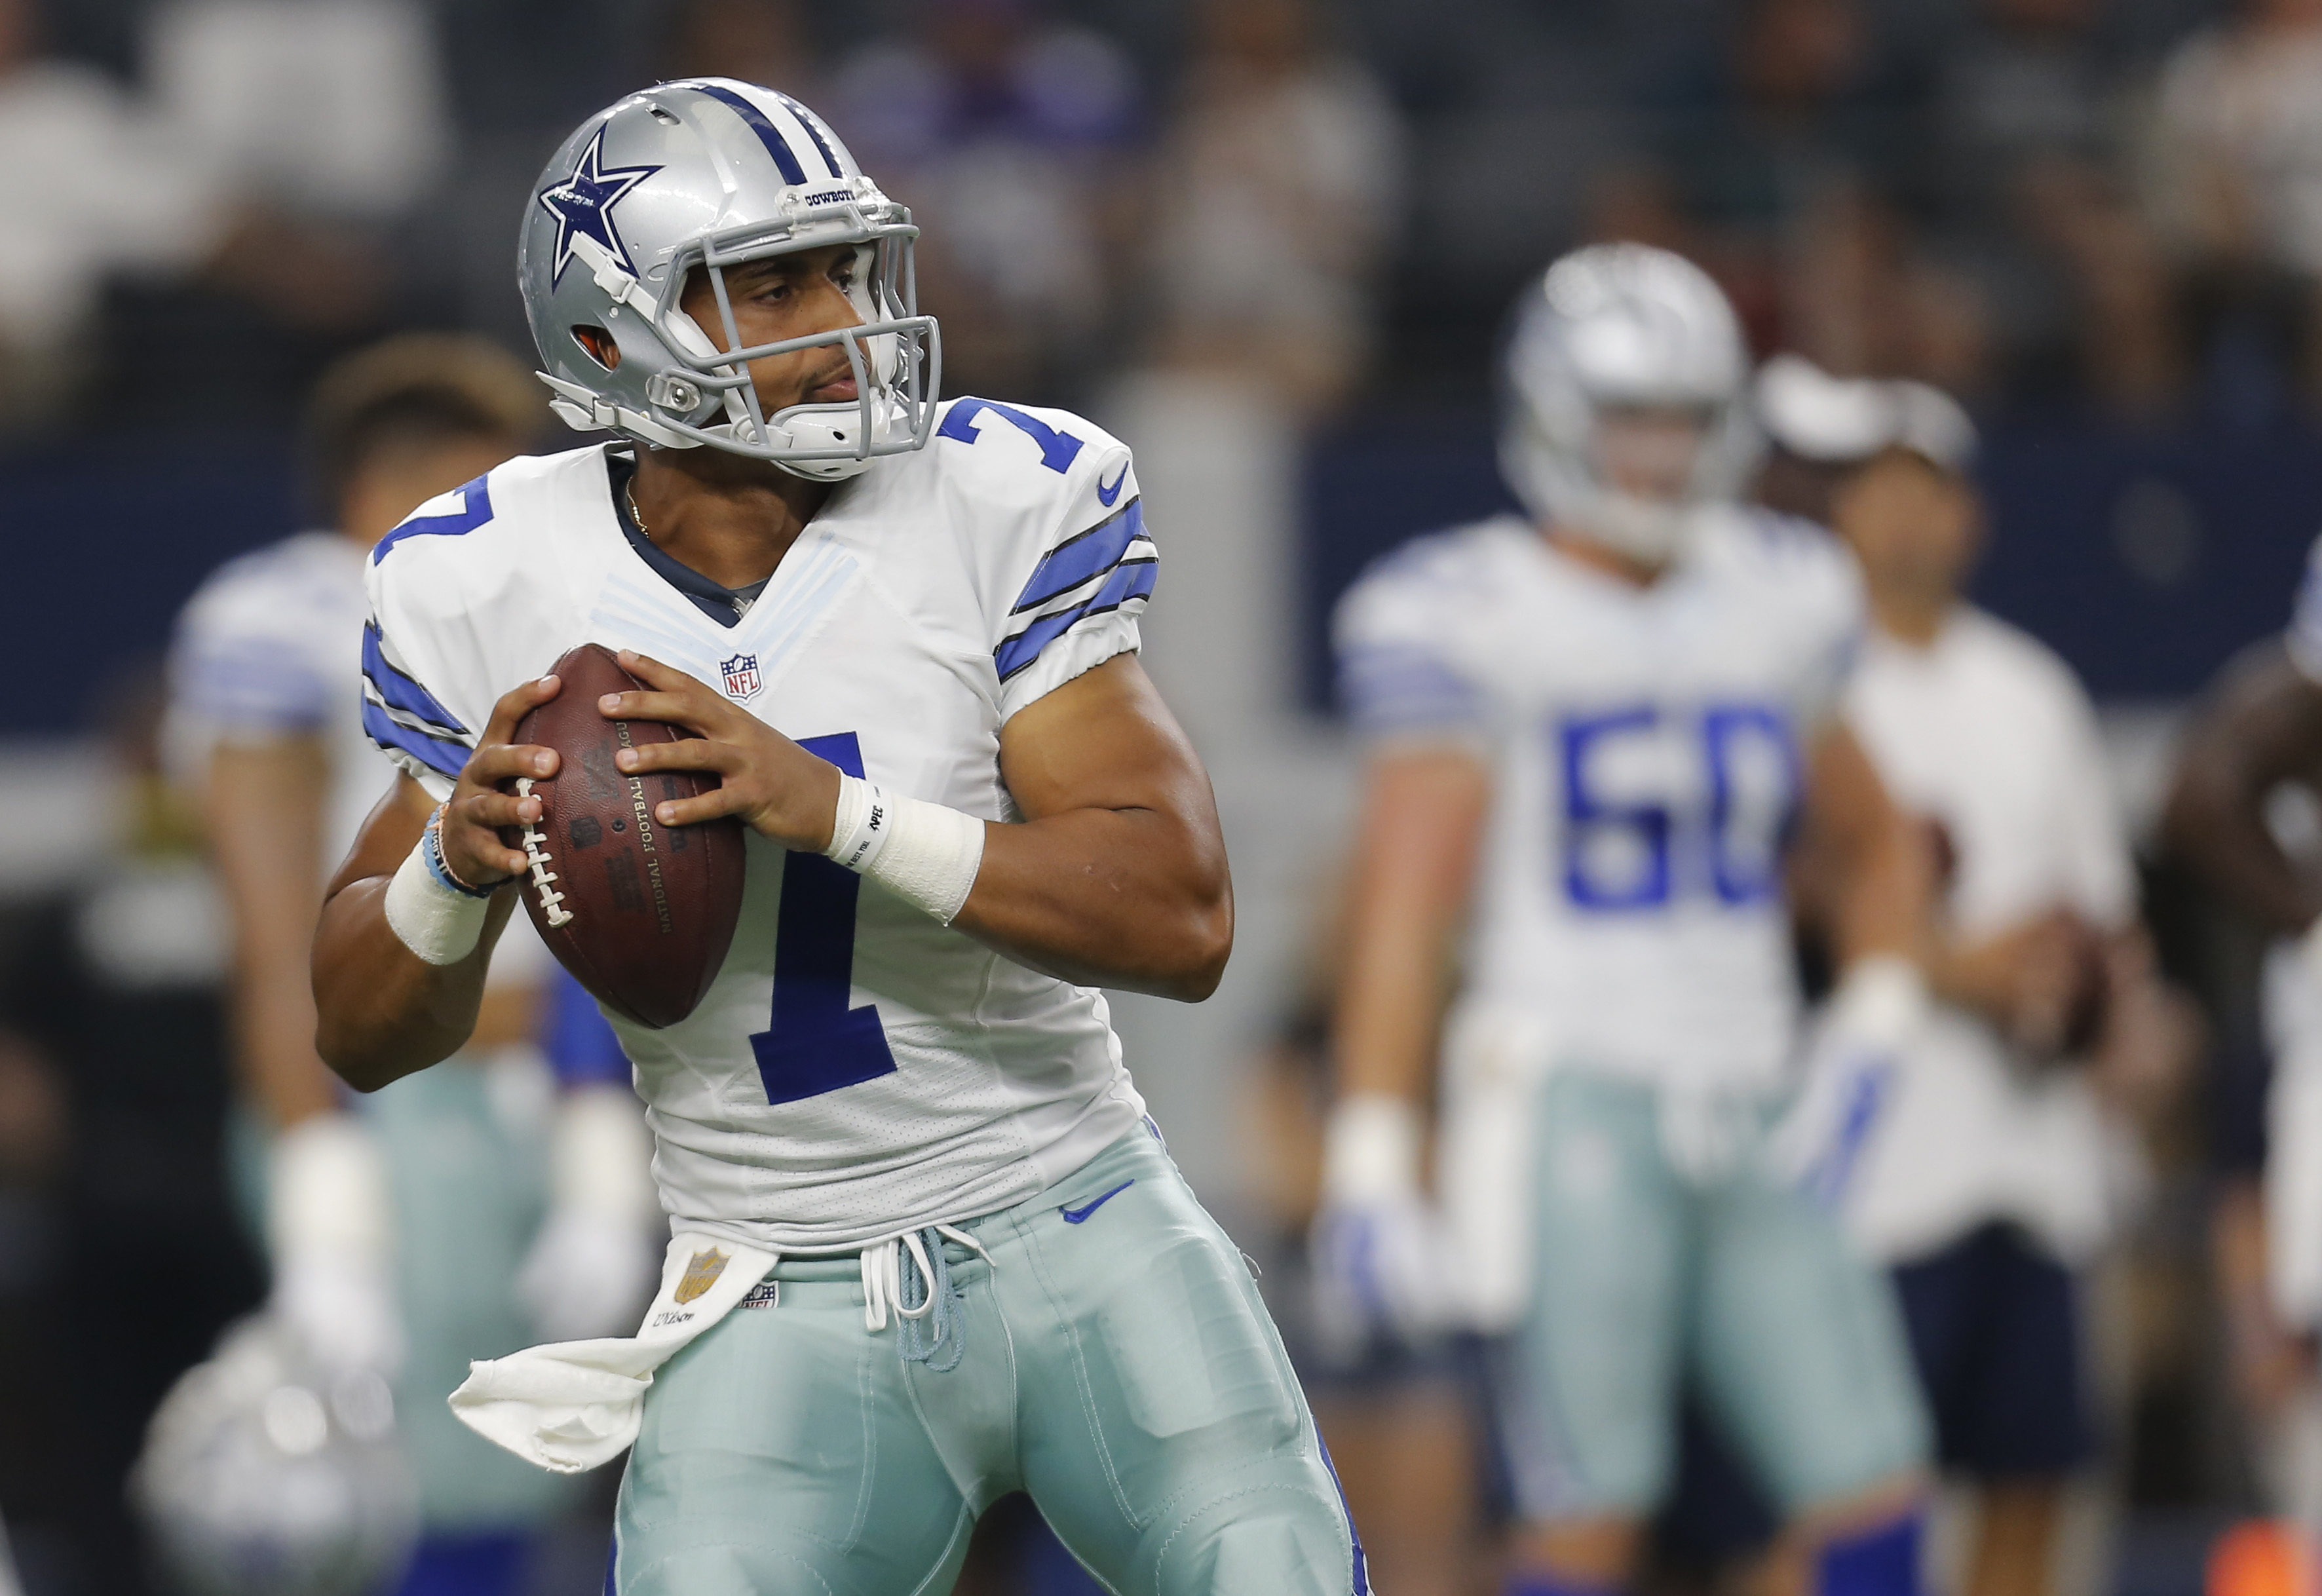 FILE - In this Saturday, Aug. 29, 2015 file photo, Dallas Cowboys quarterback Jameill Showers (7) warms up before a preseason NFL football game against the Minnesota Vikings  in Arlington, Texas. The Cowboys will give longer looks to a pair of young playe